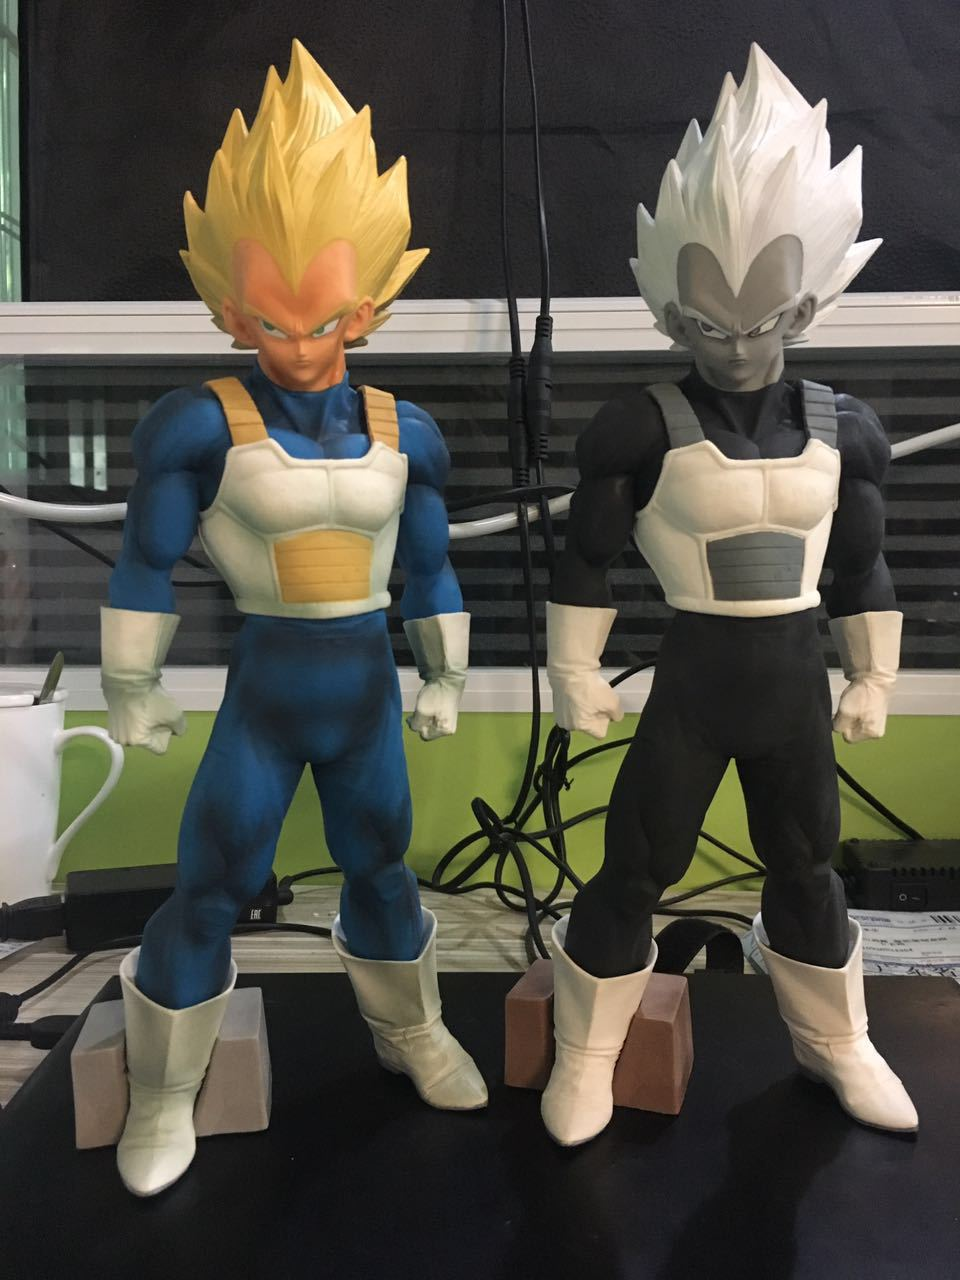 anime Dragon Ball z super saiyan vegeta action figure pvc classic collection Dragon Ball figure model garage kit toy 32cm anime one piece arrogance garp model pvc action figure classic collection garage kit toy doll